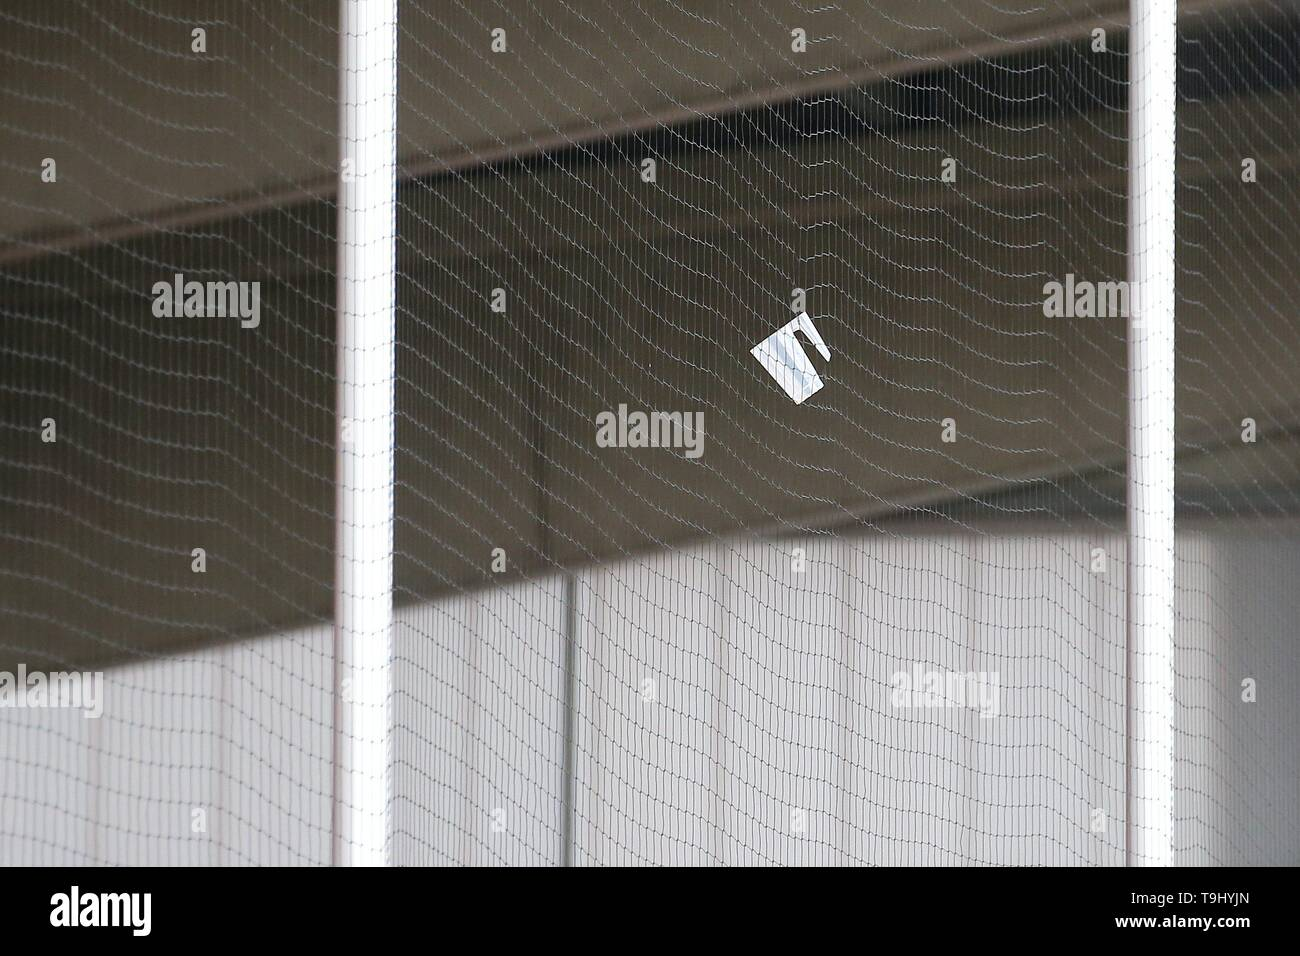 Oberhausen, Germany. 18th May, 2019. firo: 18.05.2019 Football, Regionalliga West, Season 2018/2019 Rot-Weiss Oberhausen - SC Verl after a missed penalty the fans throw their beer cups into the safety fence. | usage worldwide Credit: dpa/Alamy Live News - Stock Image